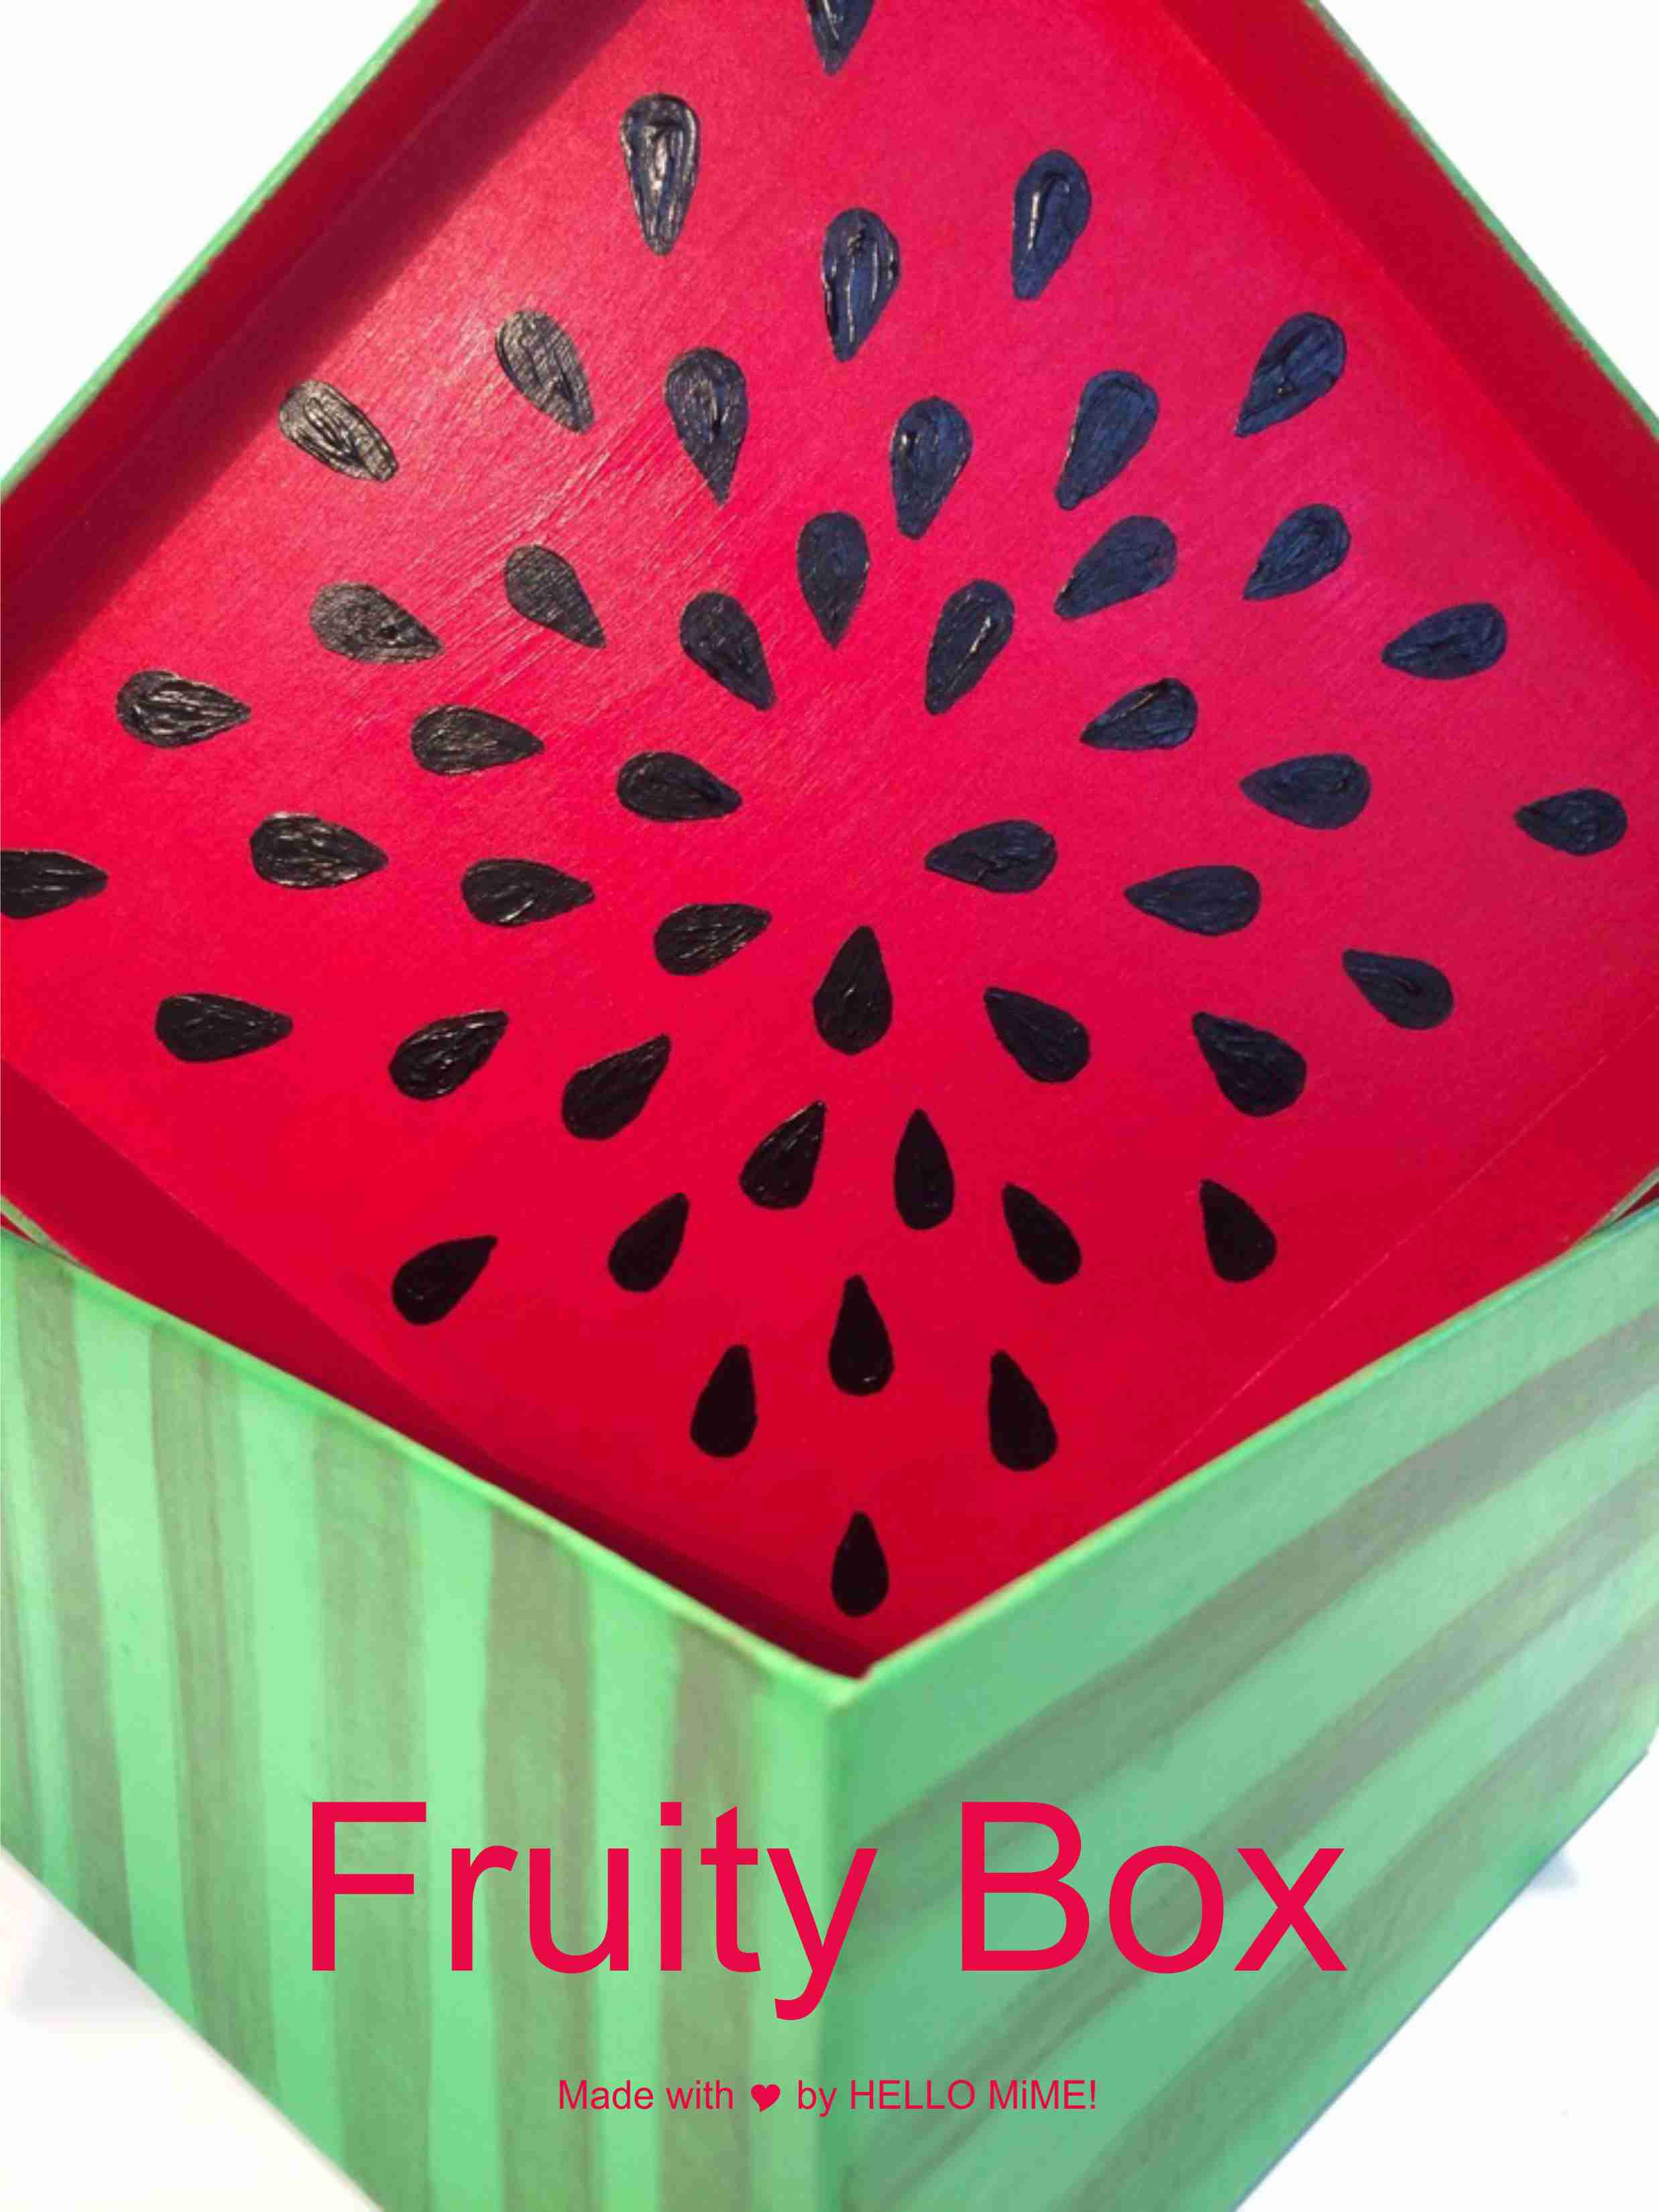 Fruity box 2